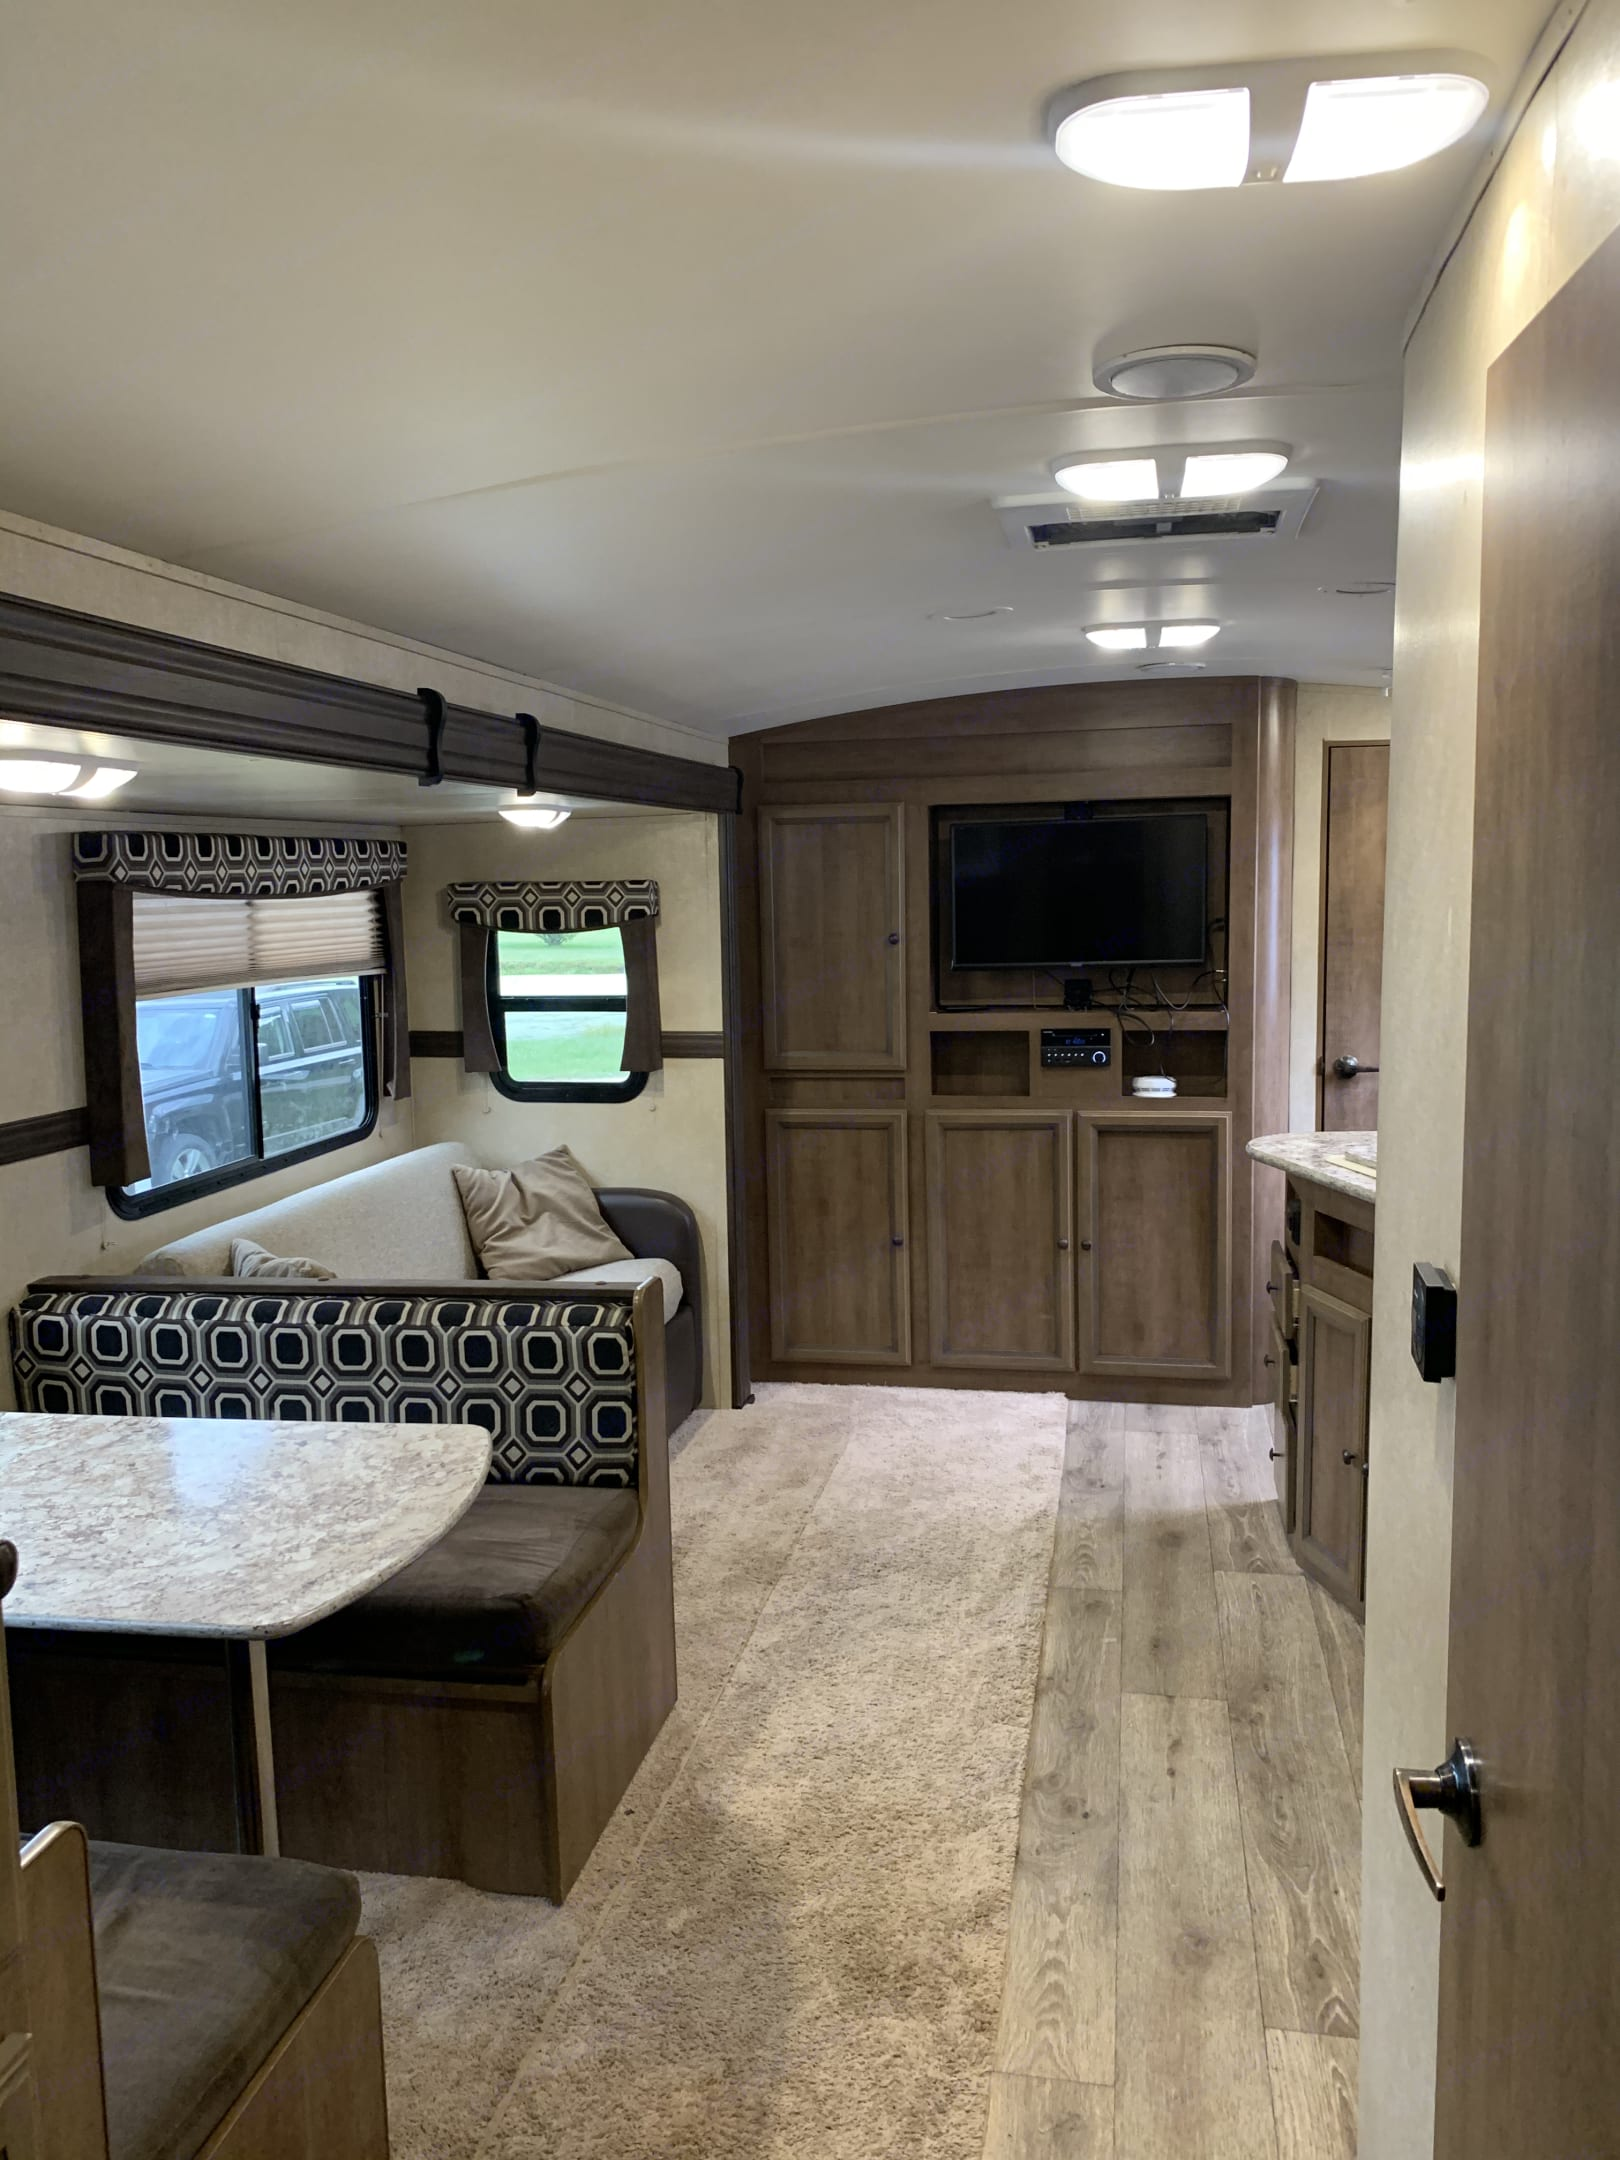 Shot from bathroom door showing living space. Cruiser Rv Corp Radiance 2015